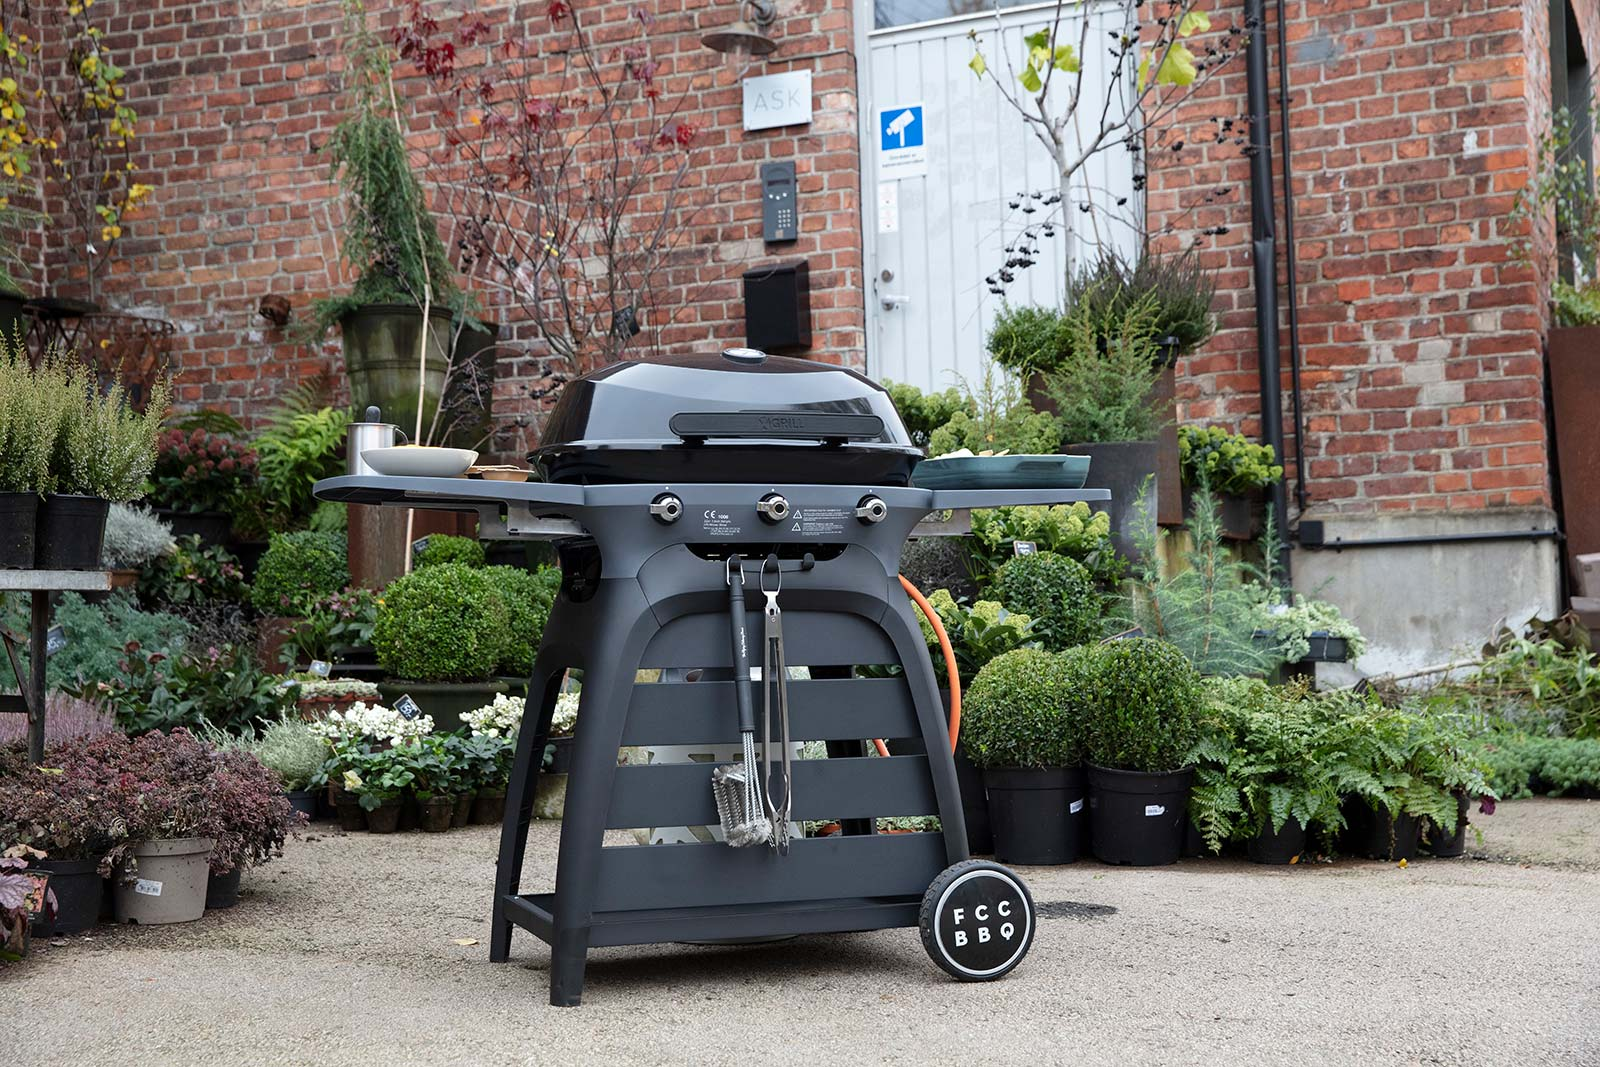 FCCBBQ Gas Grills